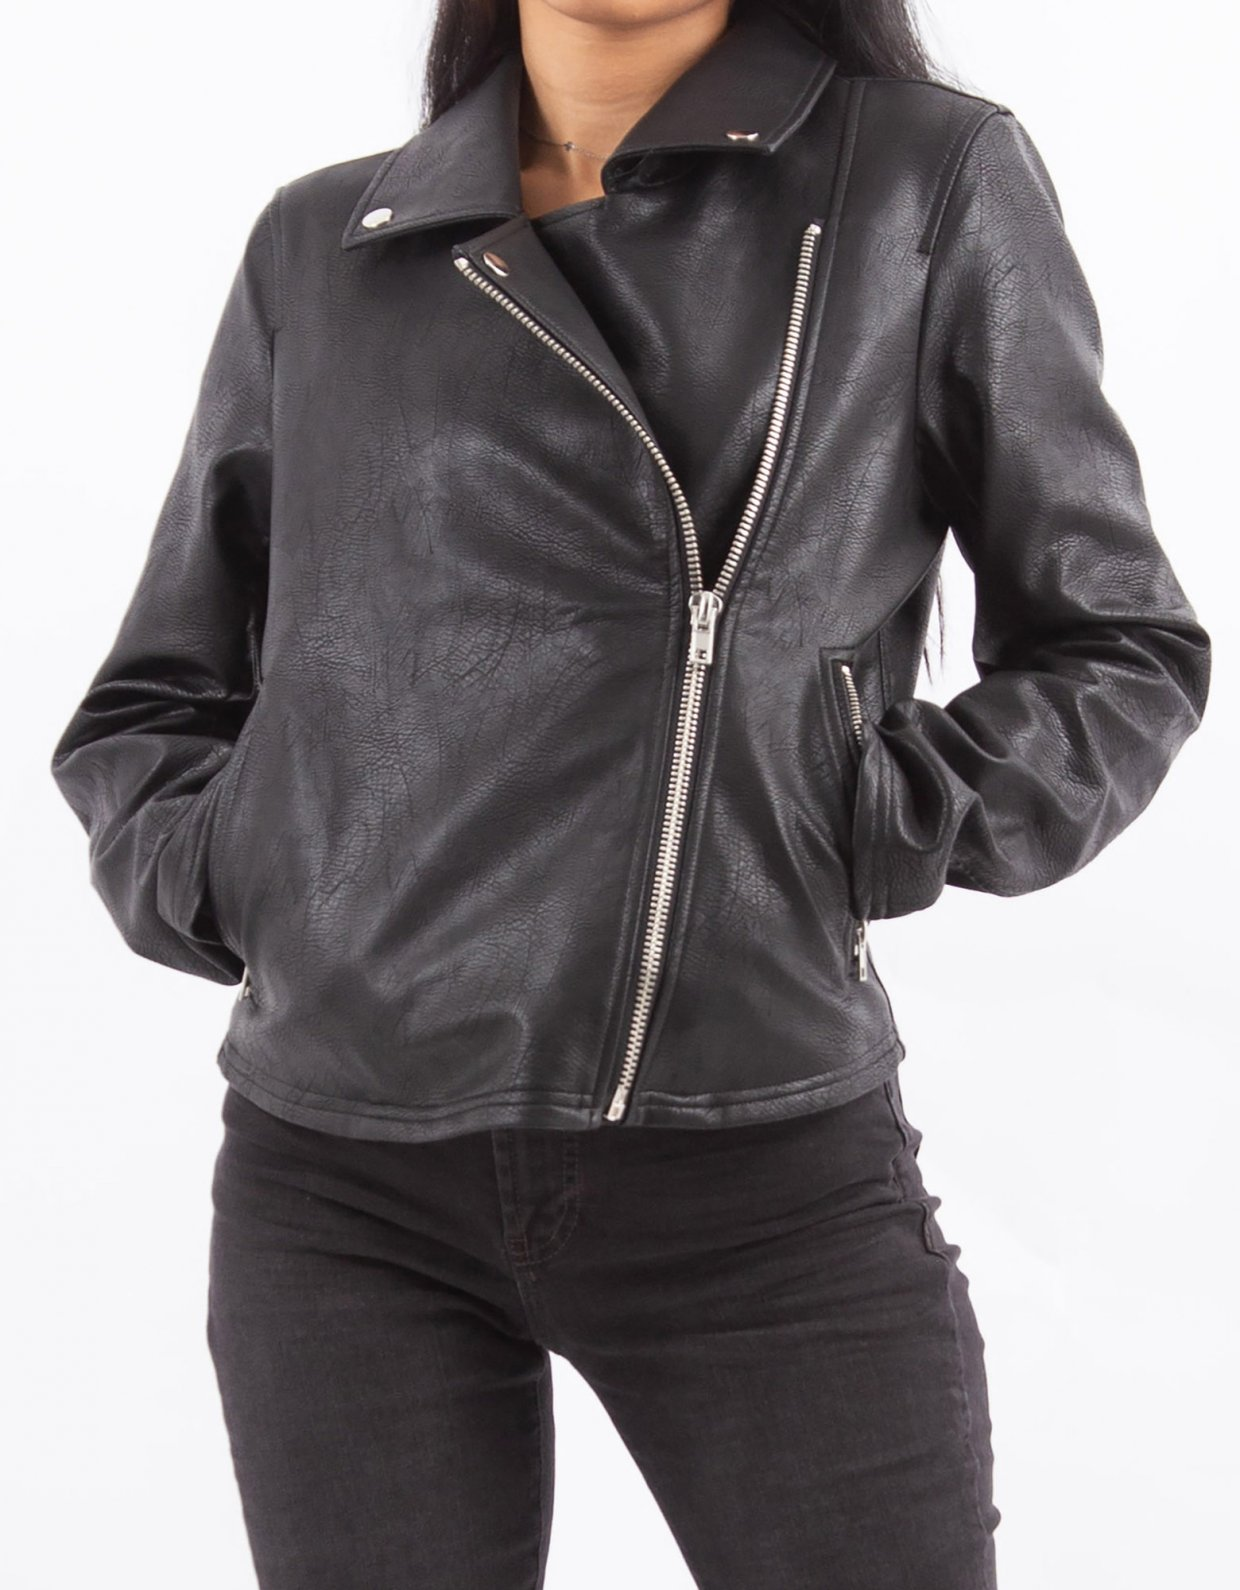 NA-KD Short biker jacket black